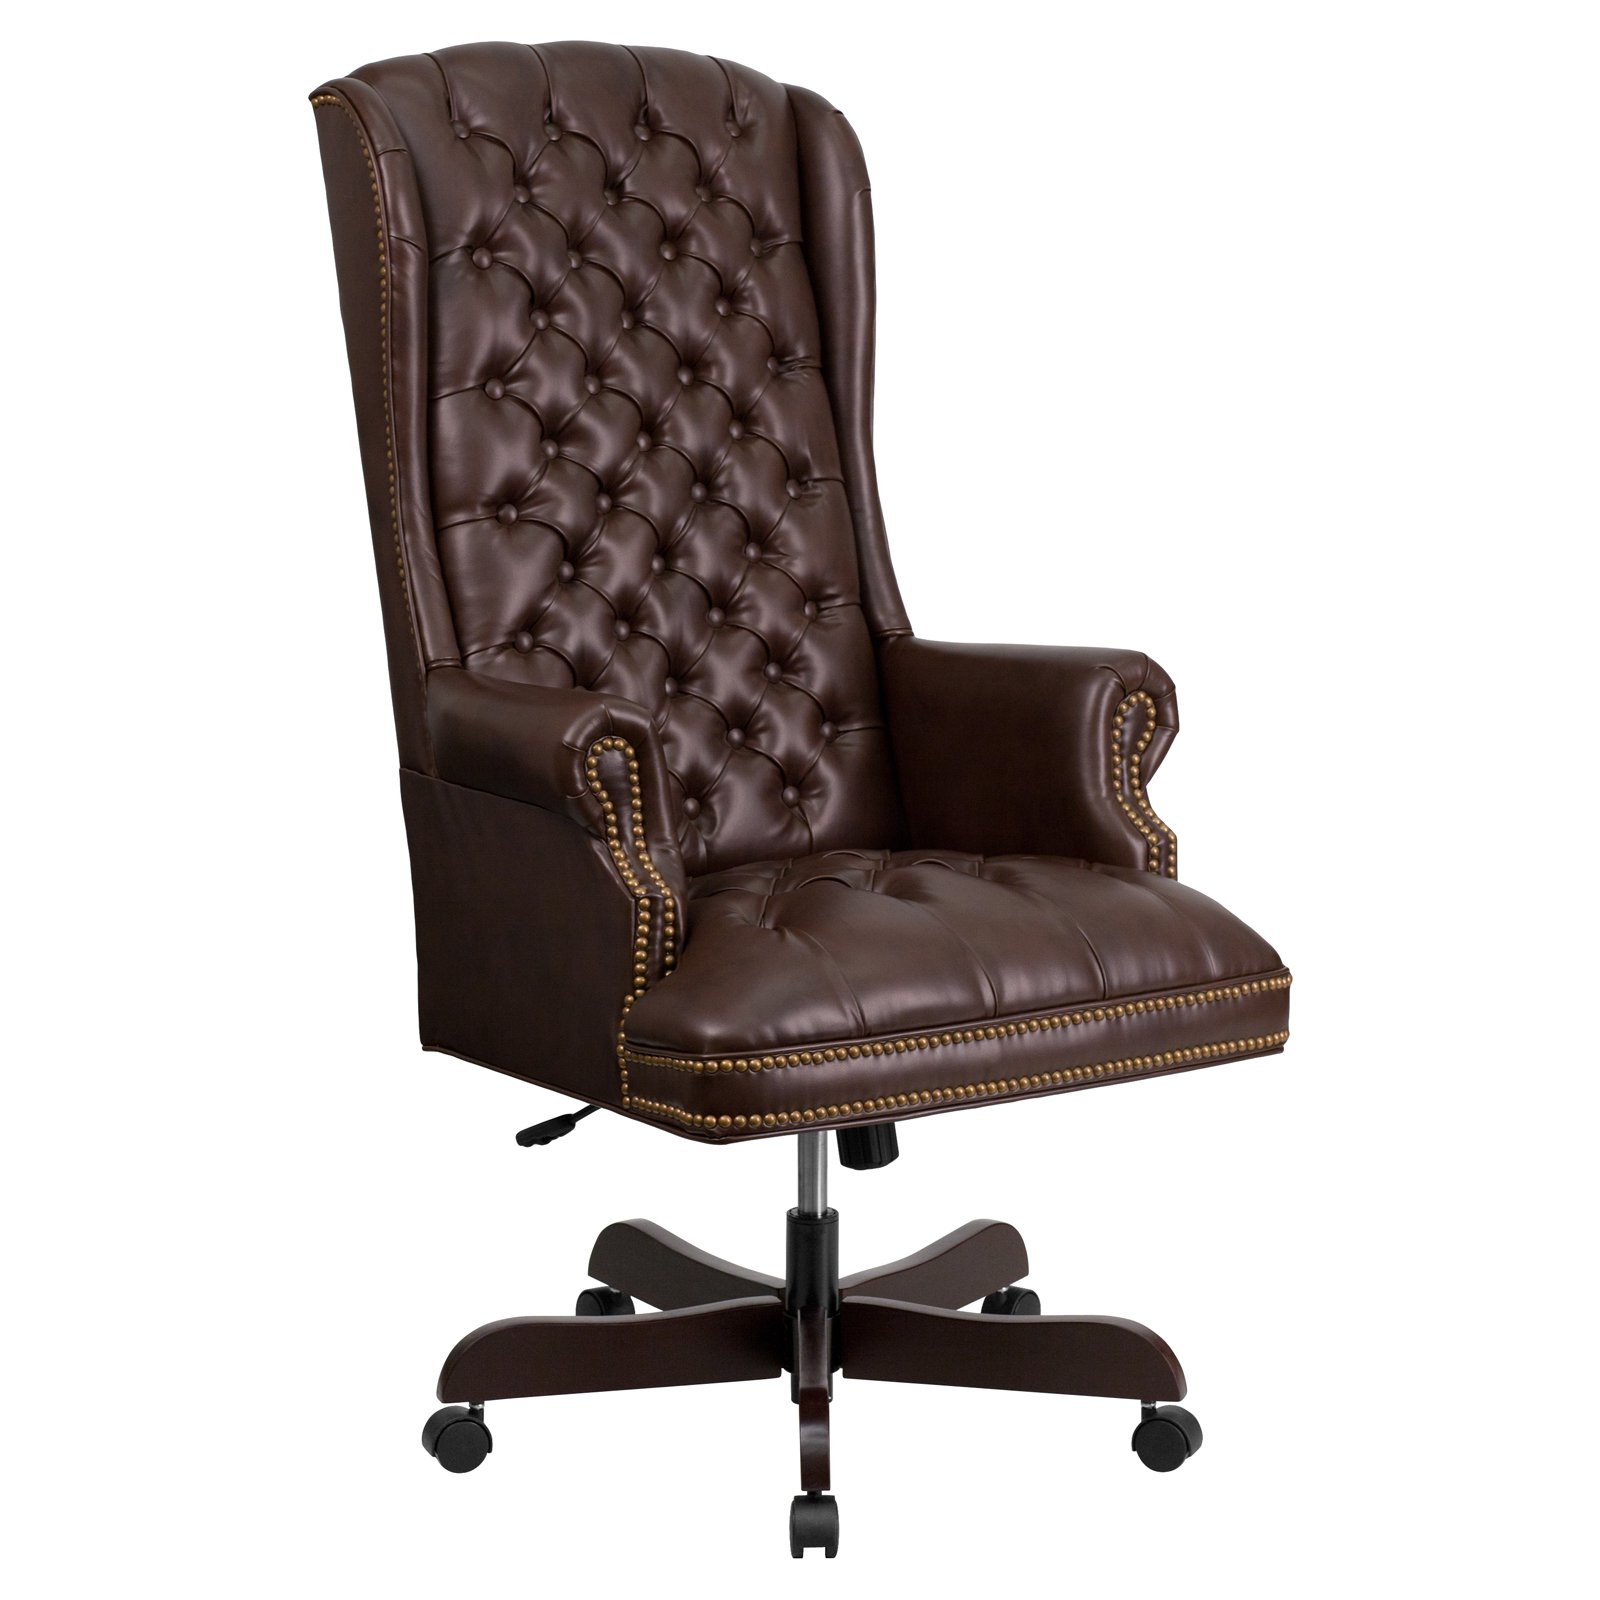 Tufted Leather Office Chair Flash Furniture High Back Traditional Tufted Leather Executive Swivel Office Chair Multiple Colors